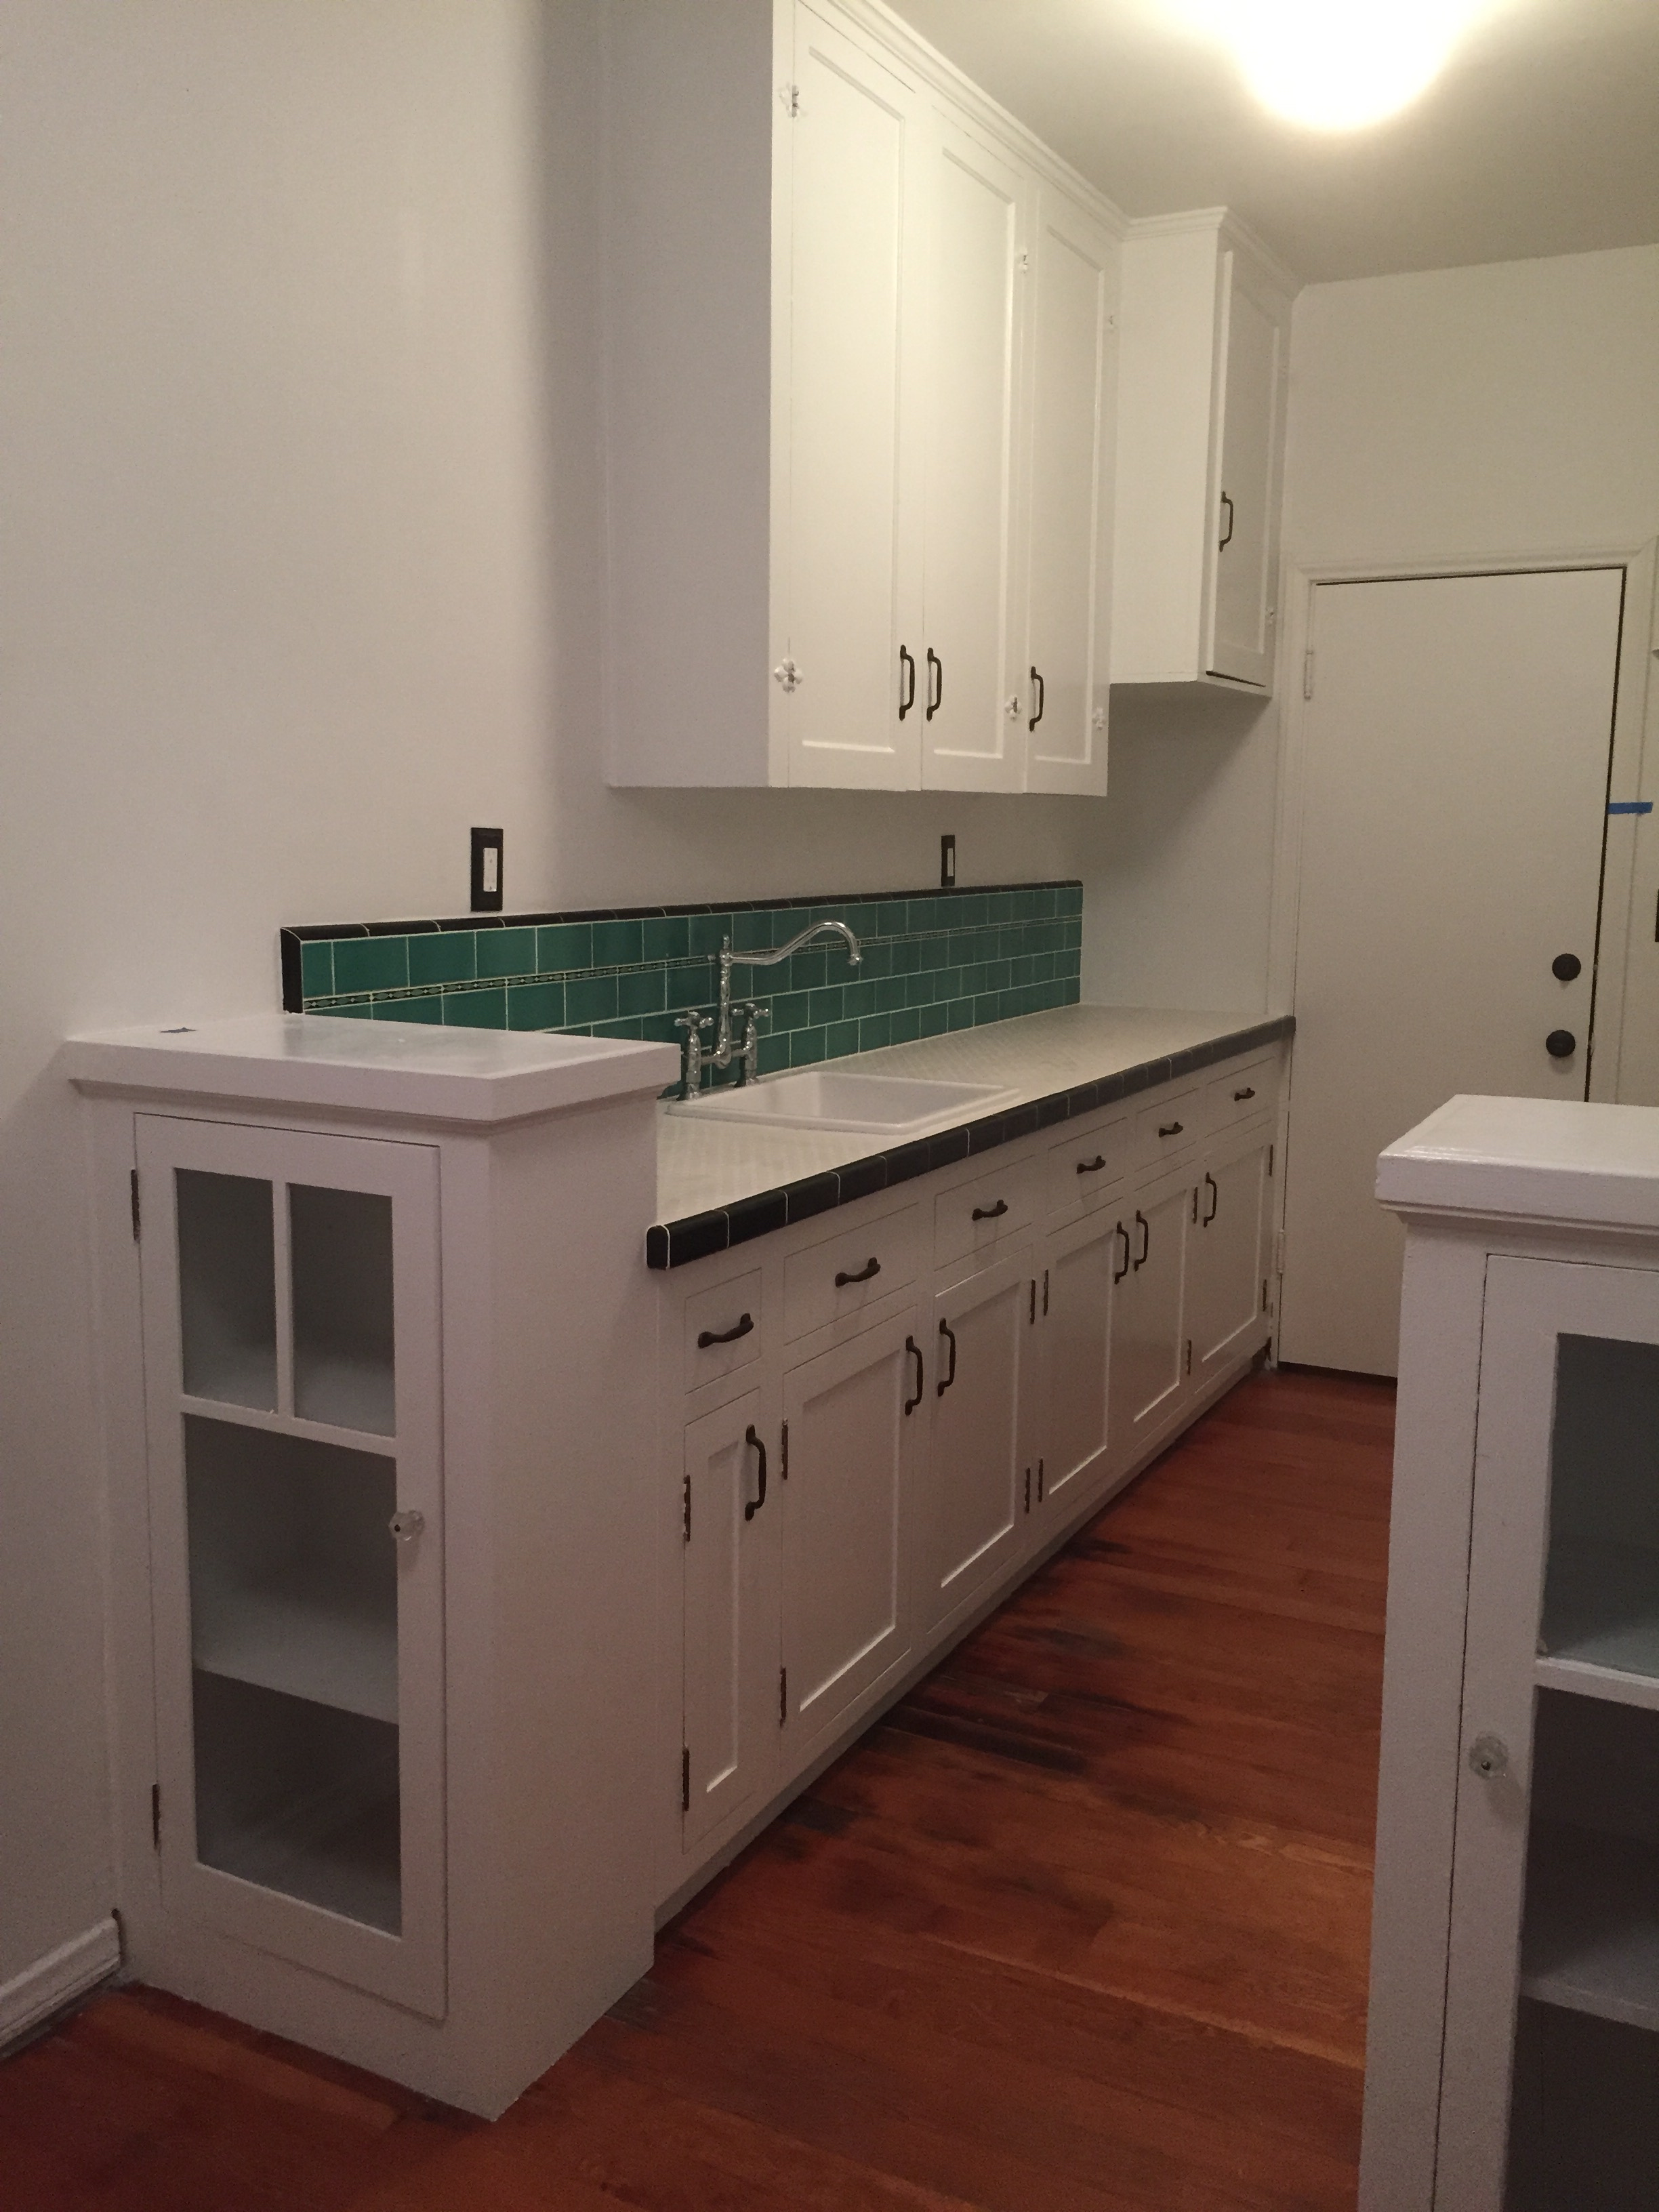 1932 kitchen re-created with reproduction tile, salvaged cabinets, floors and hardware.